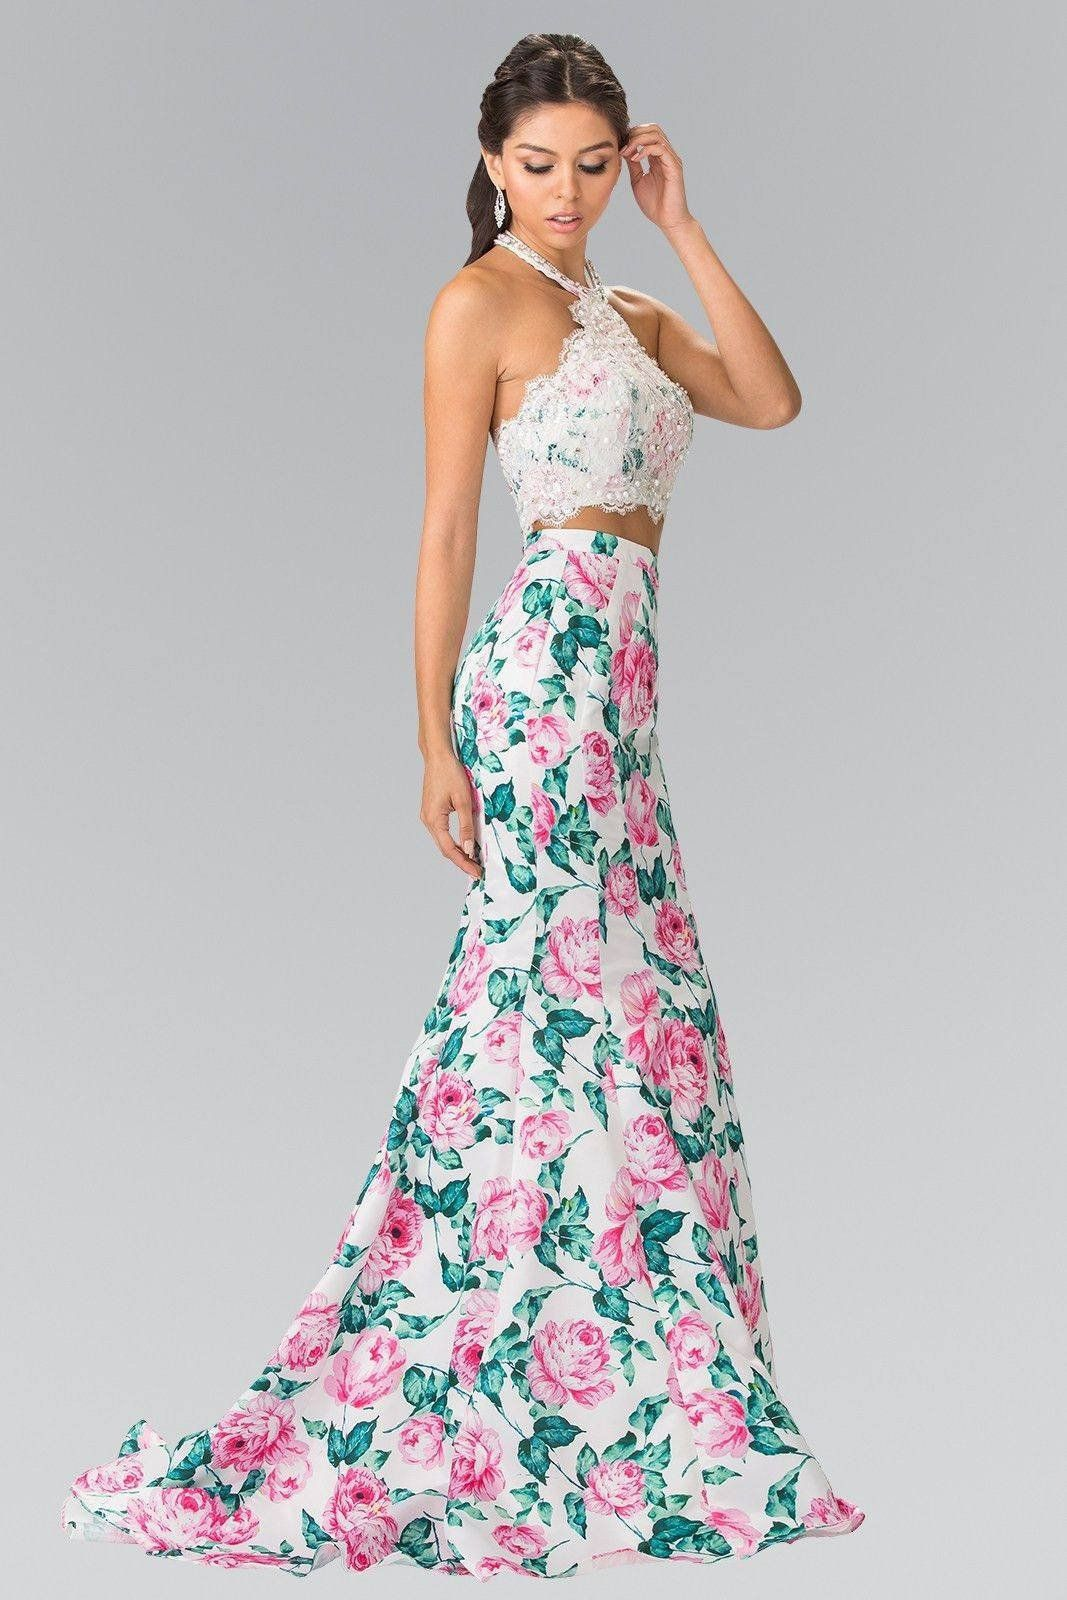 8c891f2b815 Stunning sexy 2 piece floral mermaid prom dress with lace crop top. A floral  prom dress with halter neckline adorn with elaborate beading on bodice and  cut ...